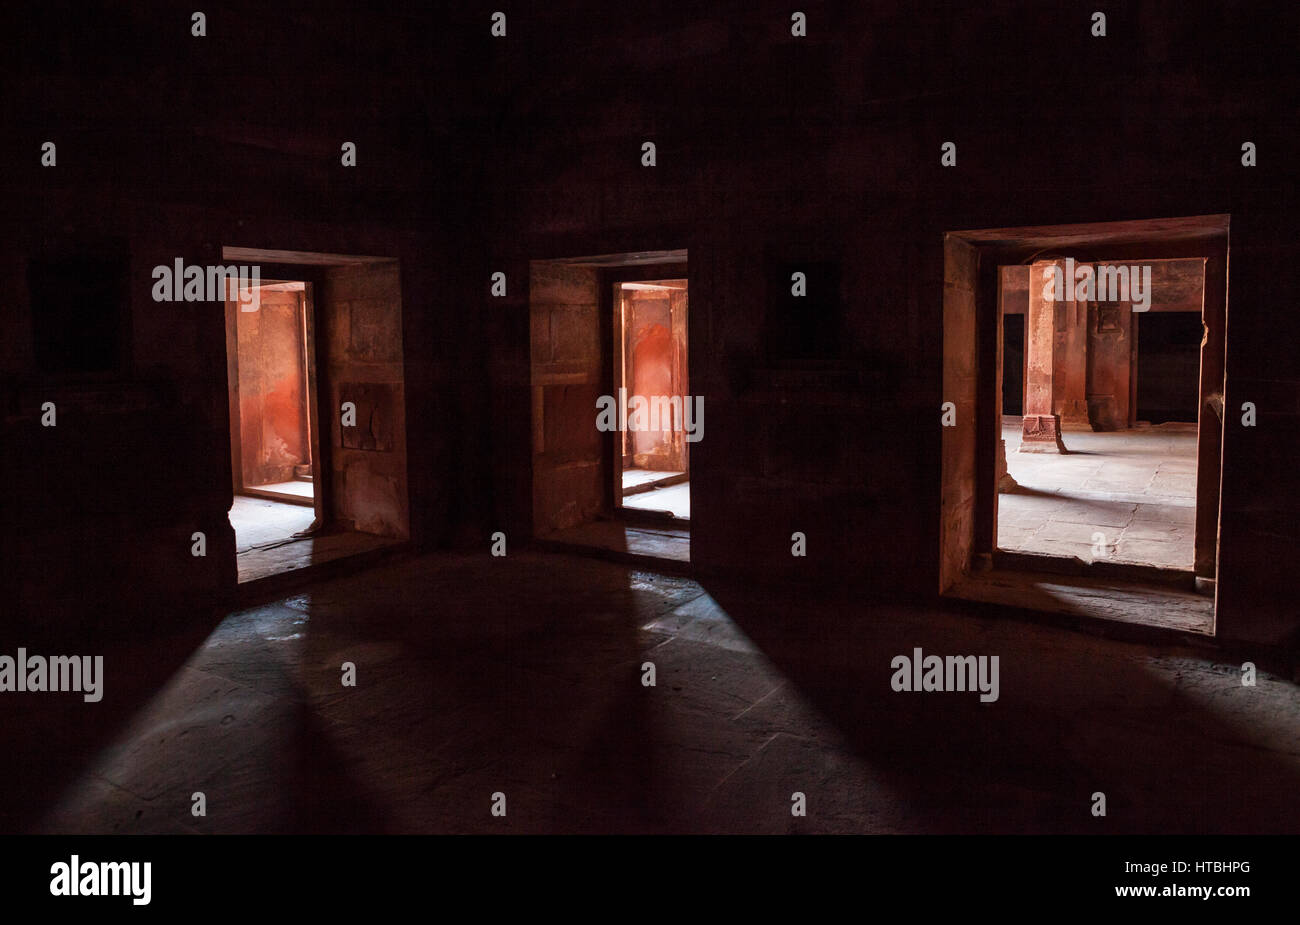 Three doorways in a dark room, Fatehpur Sikri, Uttar Pradesh, India. - Stock Image